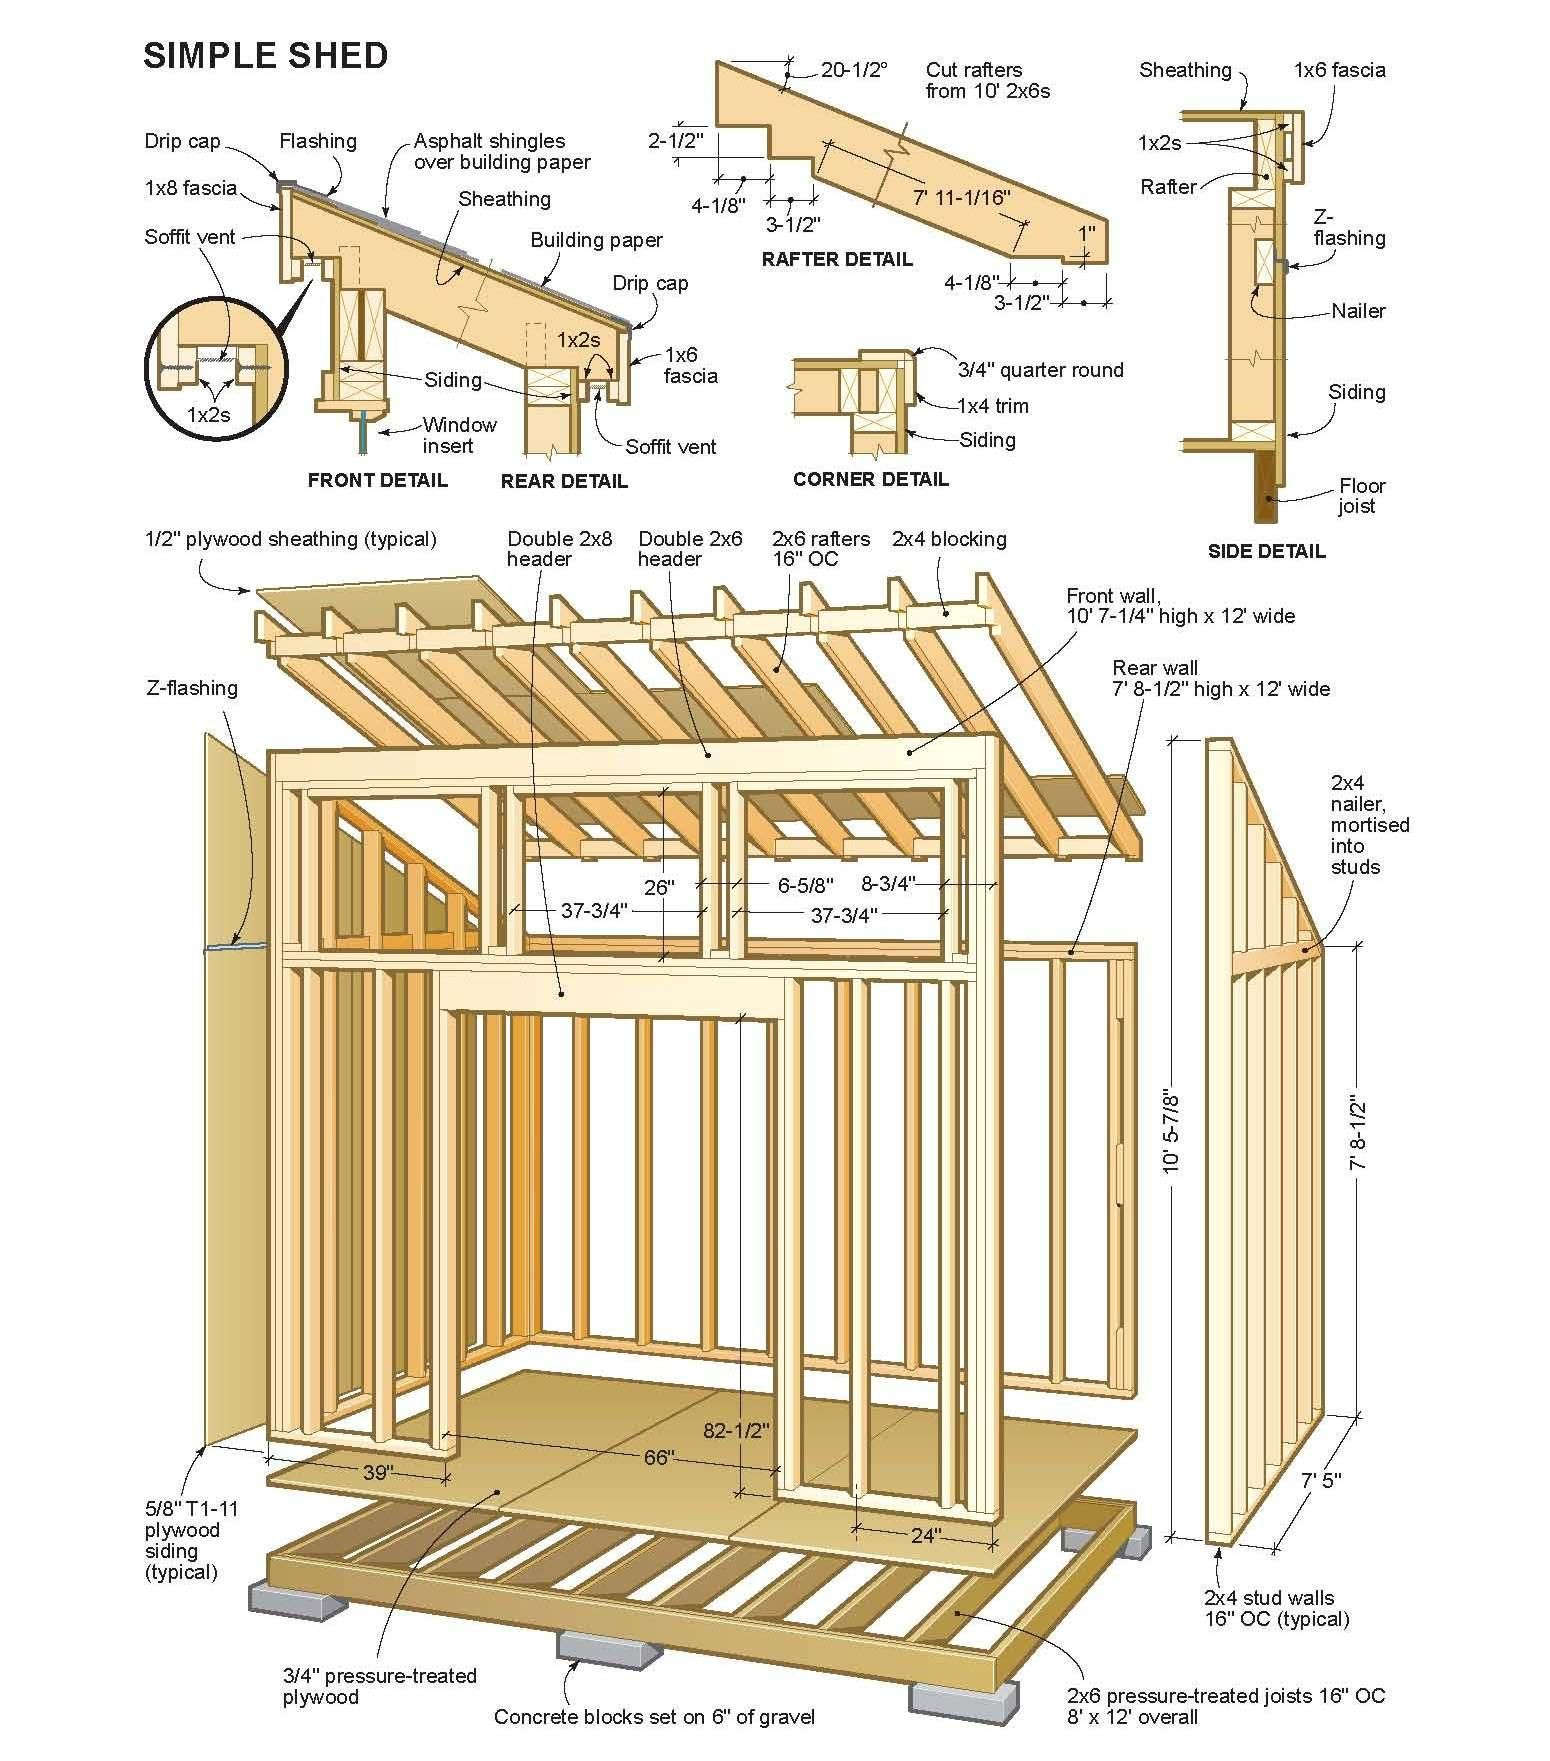 Pin By Robert Feliciano On Shed Project Wood Shed Plans Simple Shed Storage Shed Plans